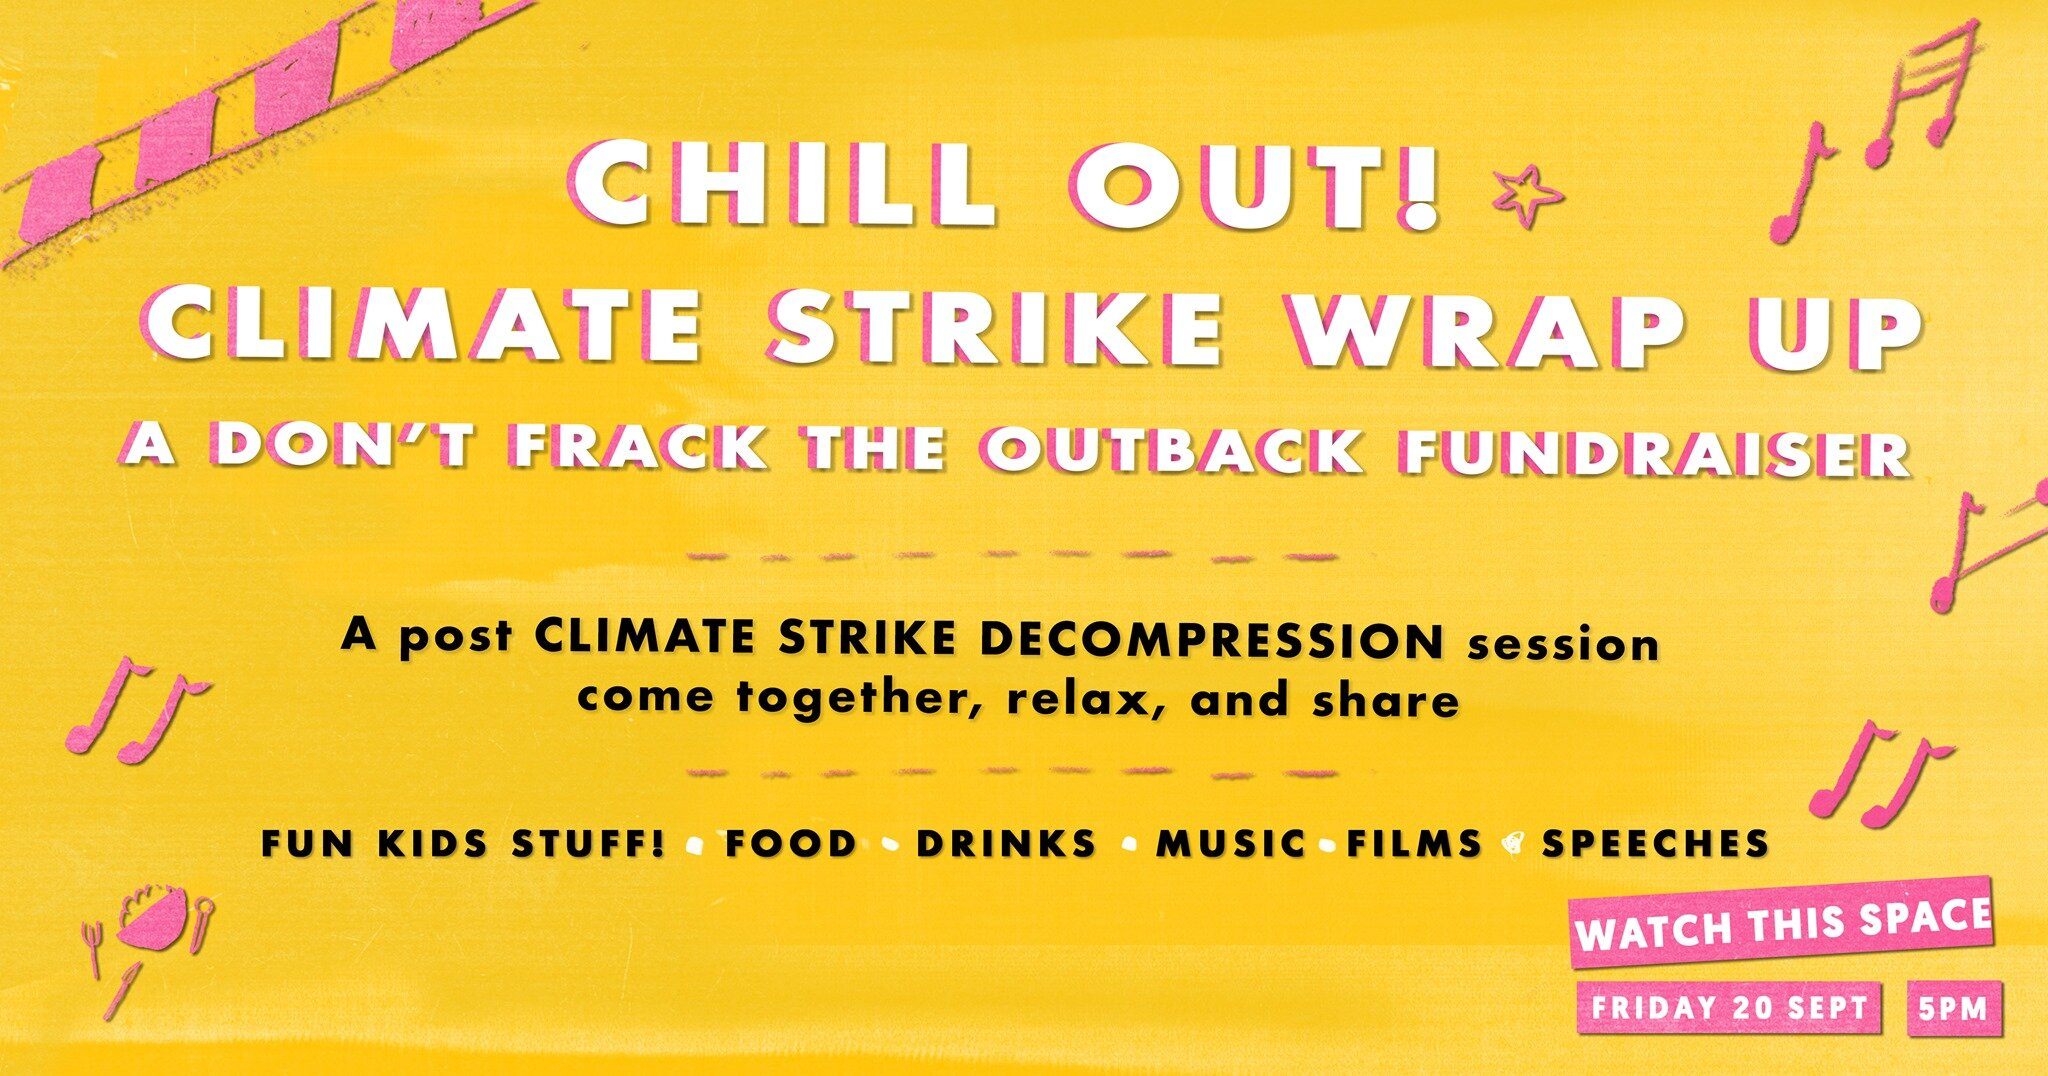 Chill Out_Climate Strike Wrap Up-WTS_1.jpg